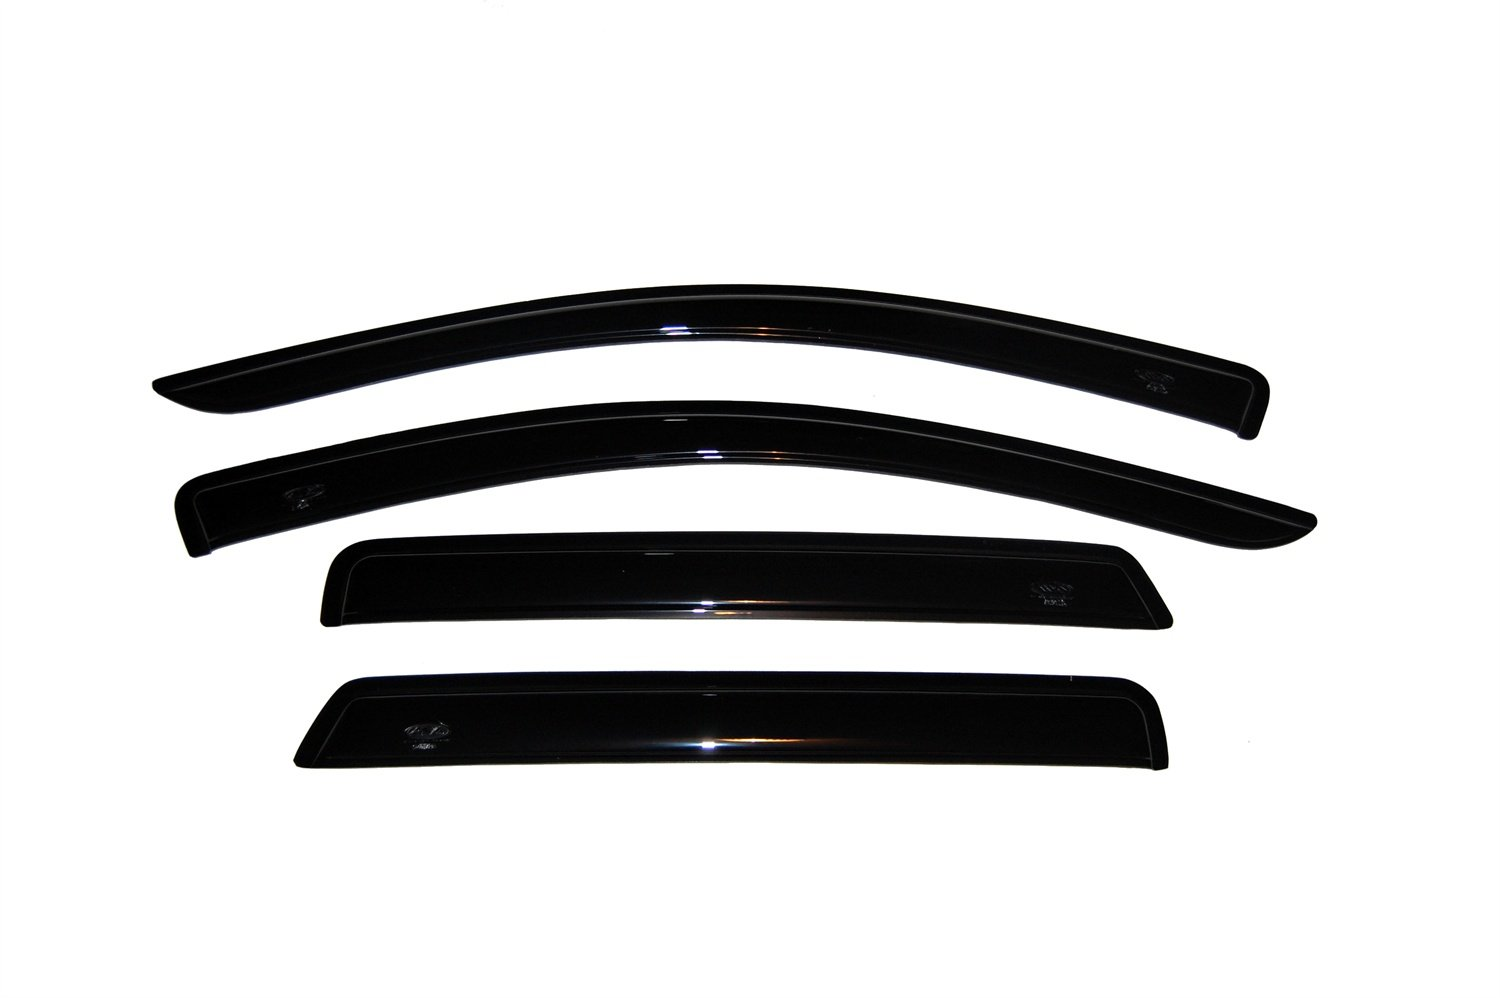 Auto Ventshade 94072 Original Ventvisor Side Window Deflector Dark Smoke, 4-Piece Set for 2008-2018 Dodge Journey